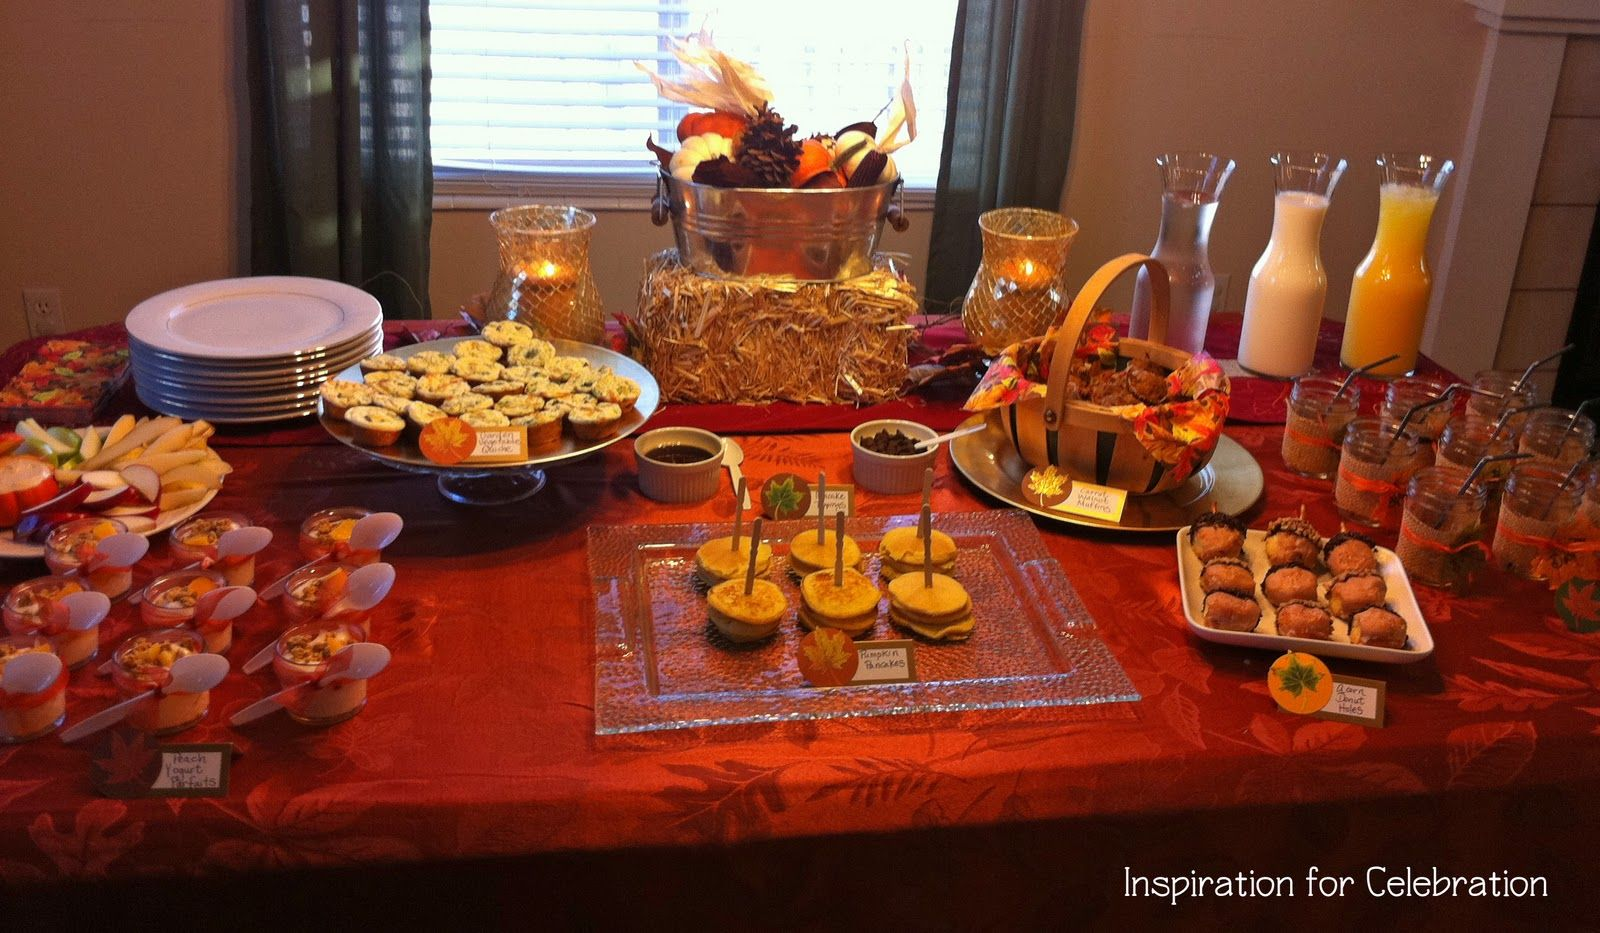 Church banquet ideas the spread for the food i wanted for Outdoor brunch decorating ideas